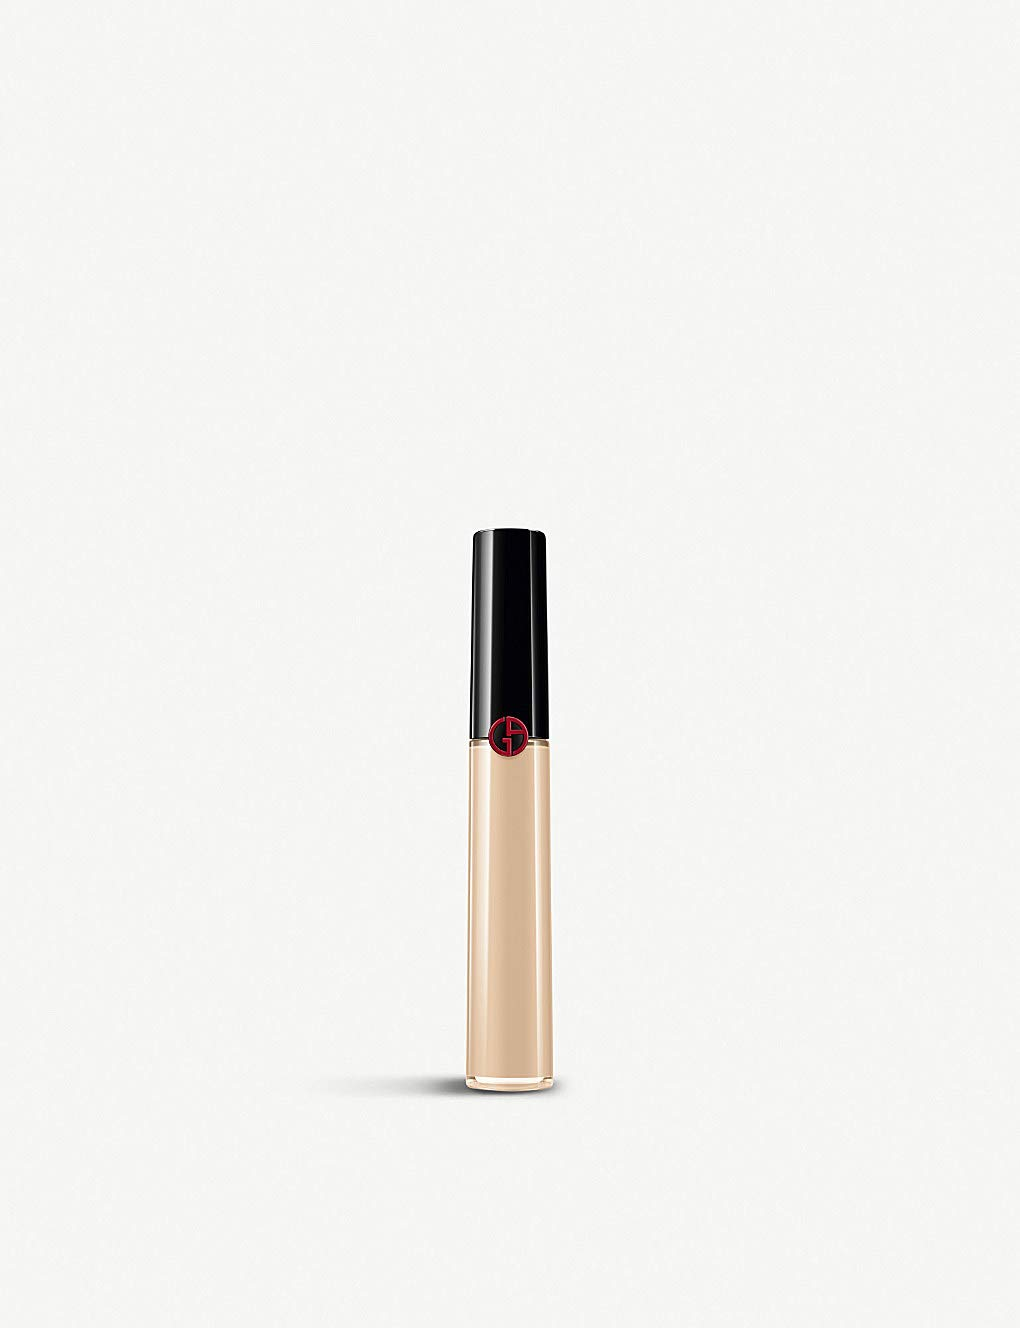 Giorgio Armani Beauty Power Fabric High Coverage Stretchable Concealer (5) by GGA Cosmetics